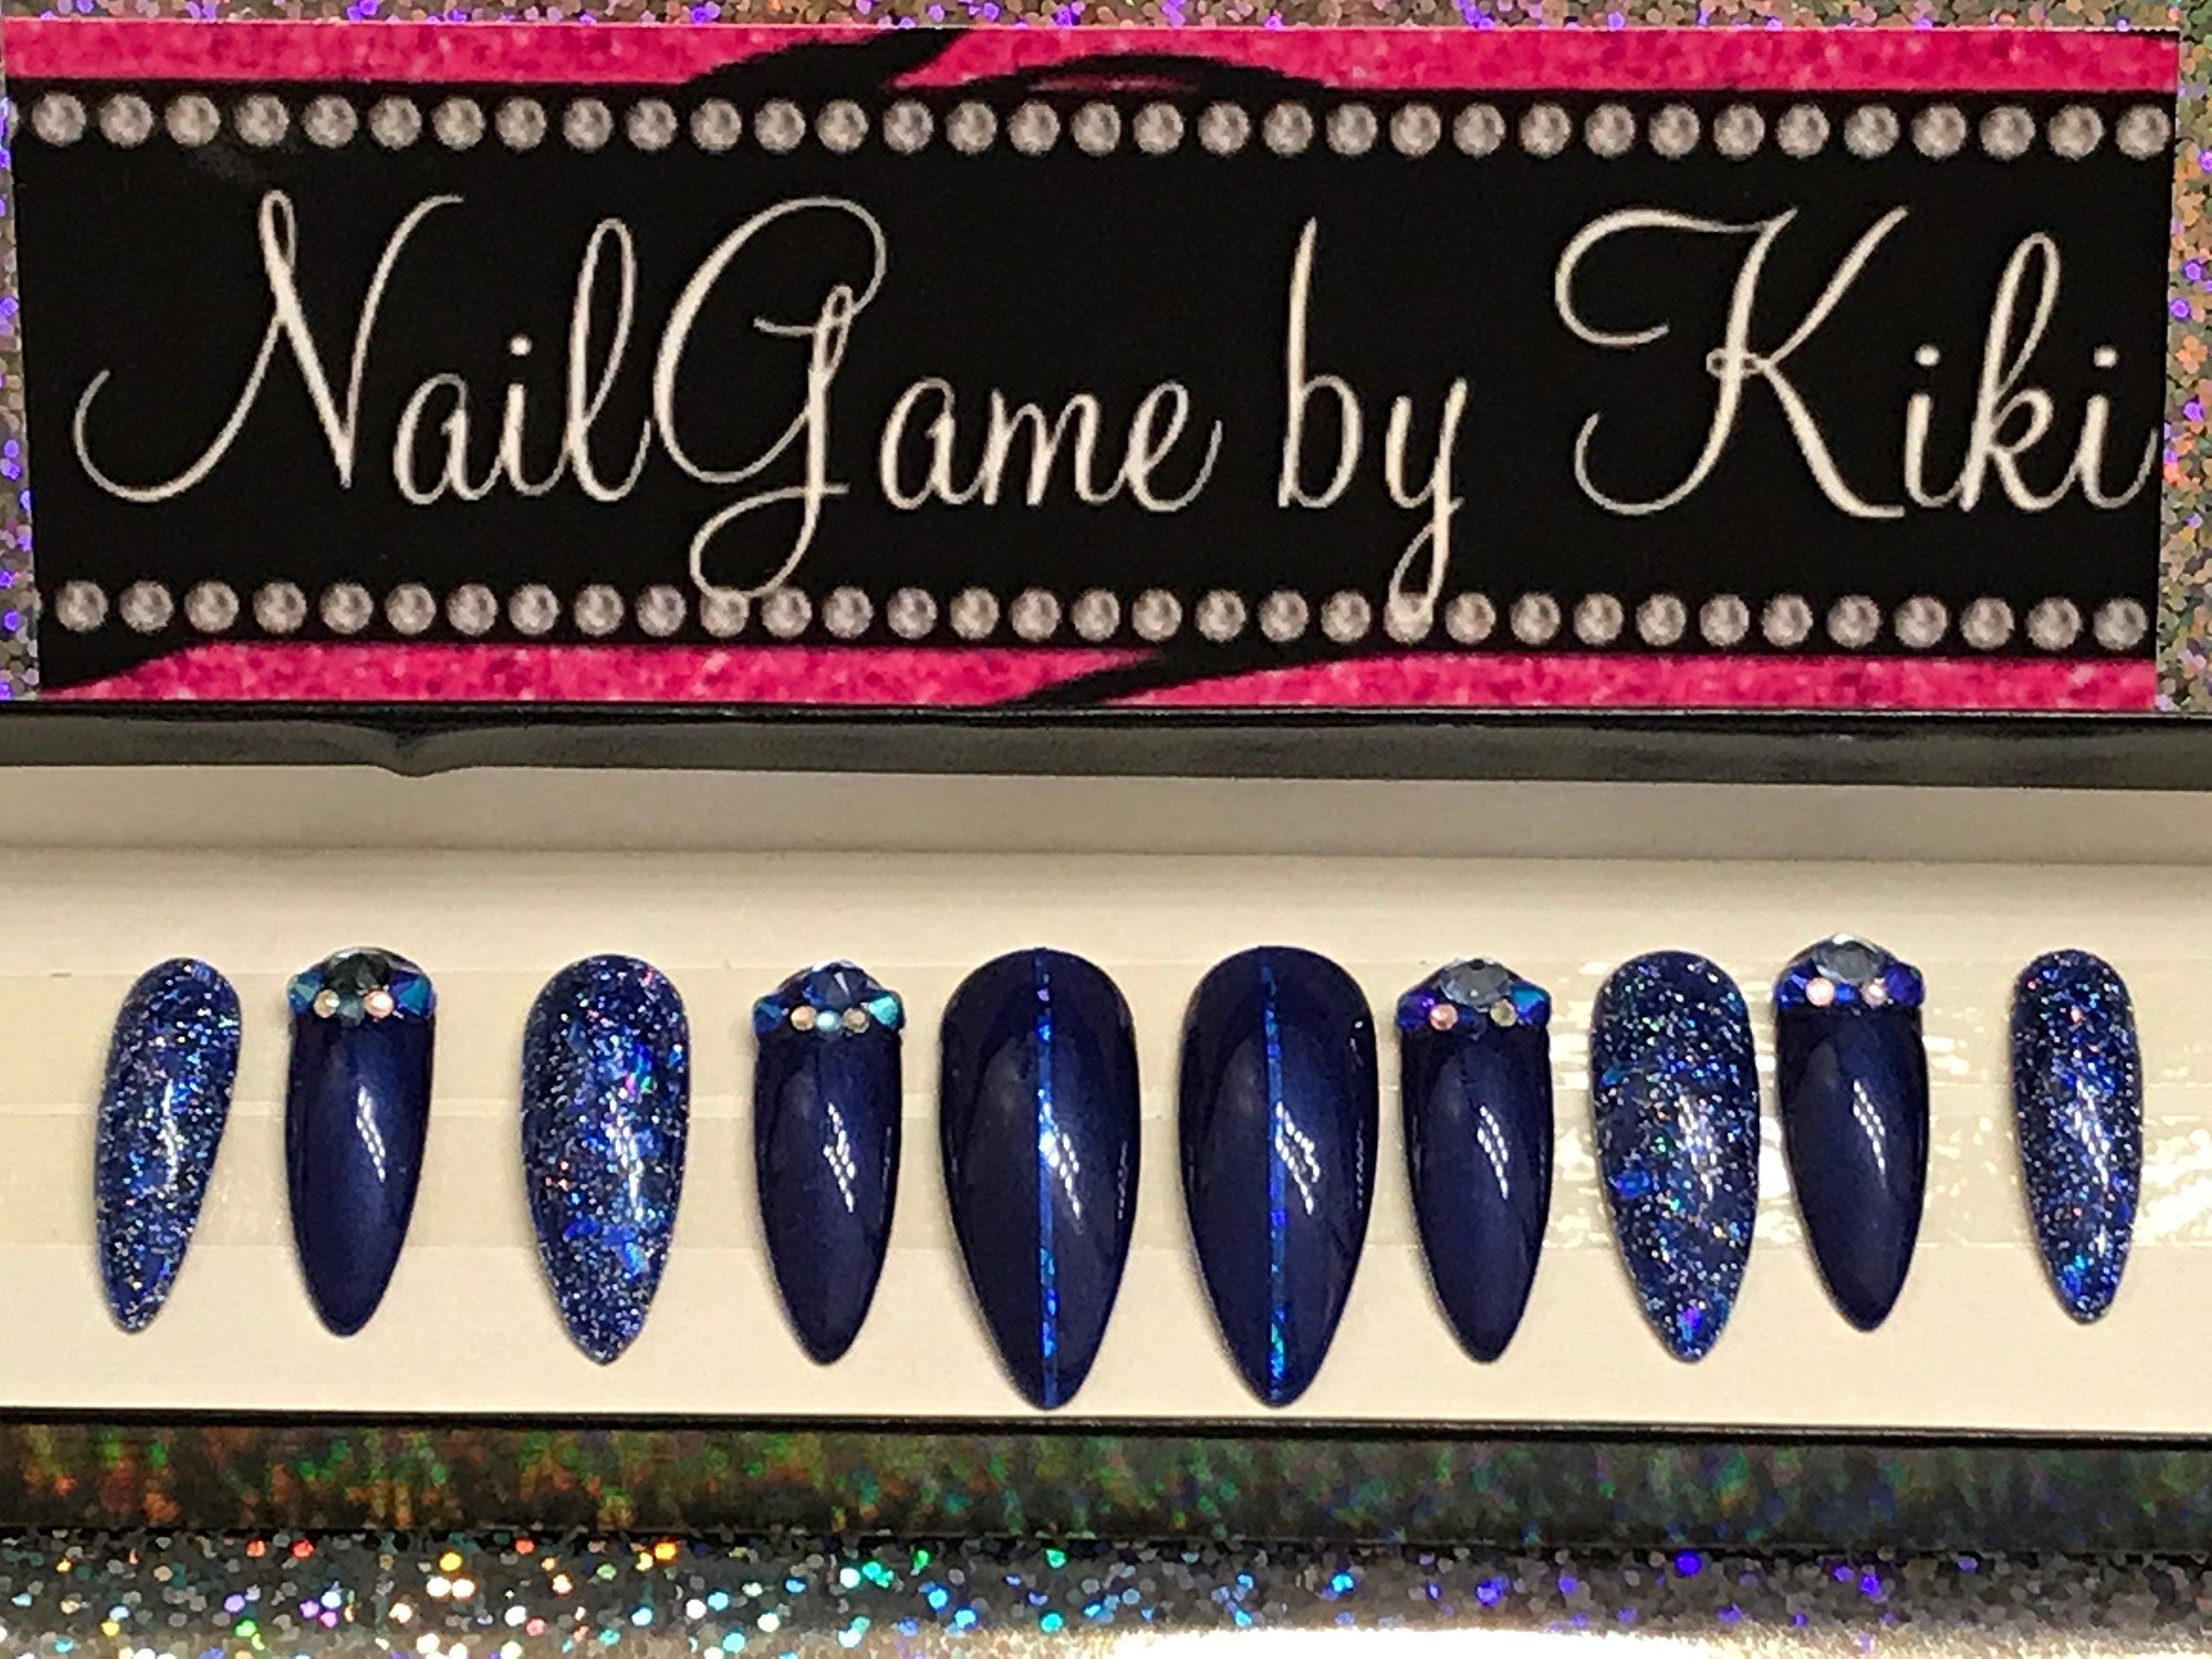 Blue and Blue Glitter Hand Designed Nails Fake Nails Blue Nails False Nails Custom Nails Designed Nails Handmade